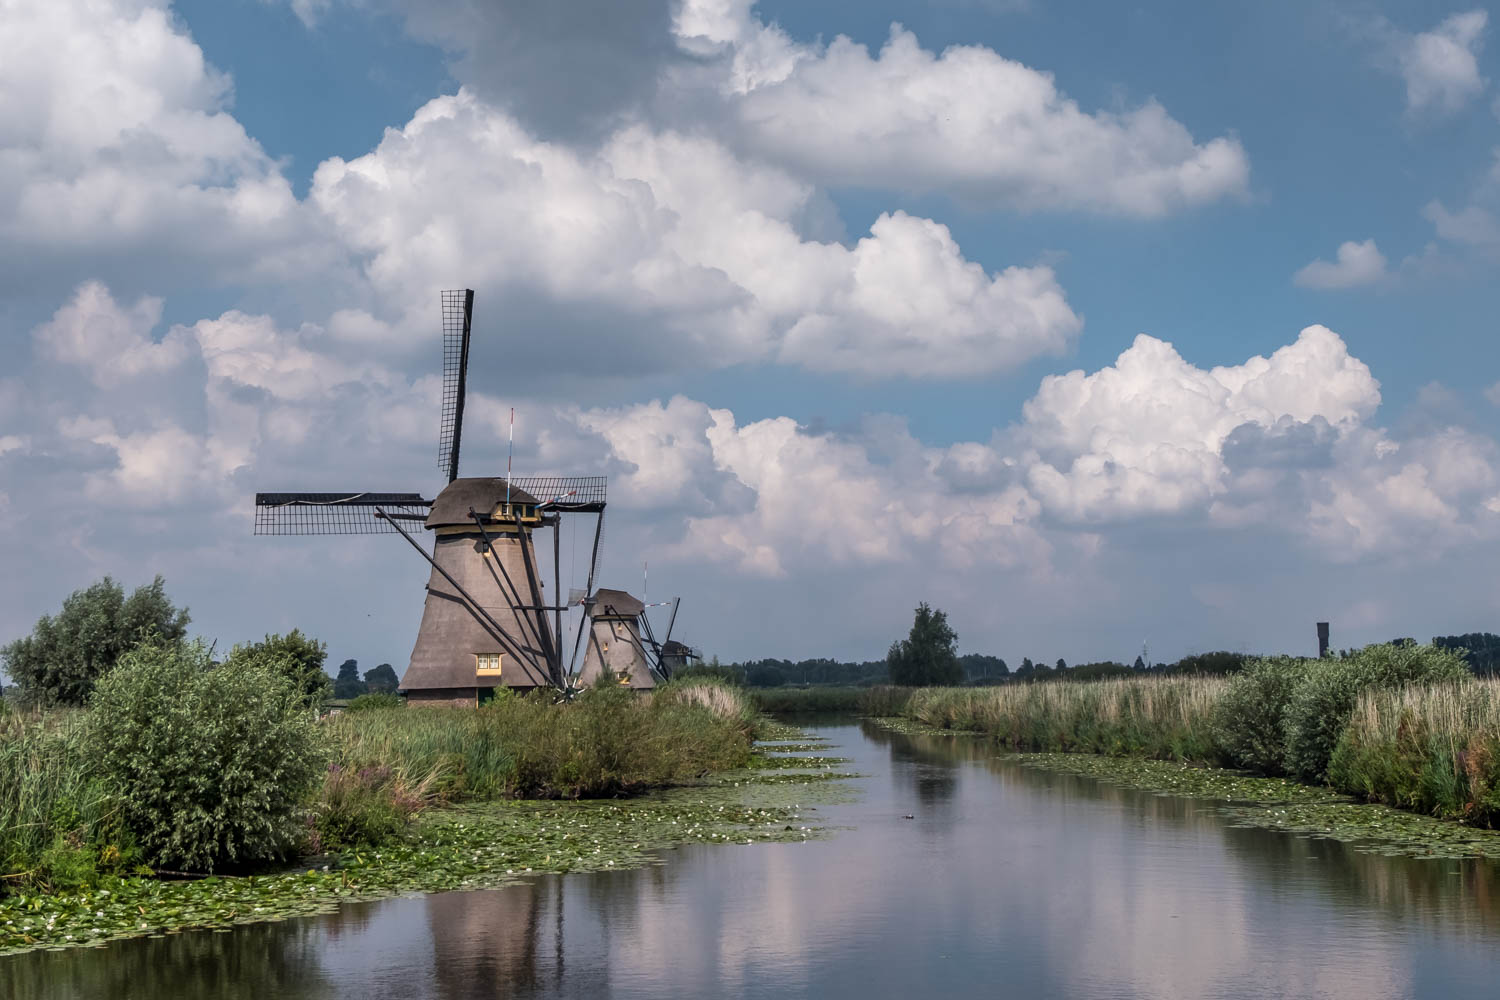 The Netherlands countryside Kinderdijk windmills